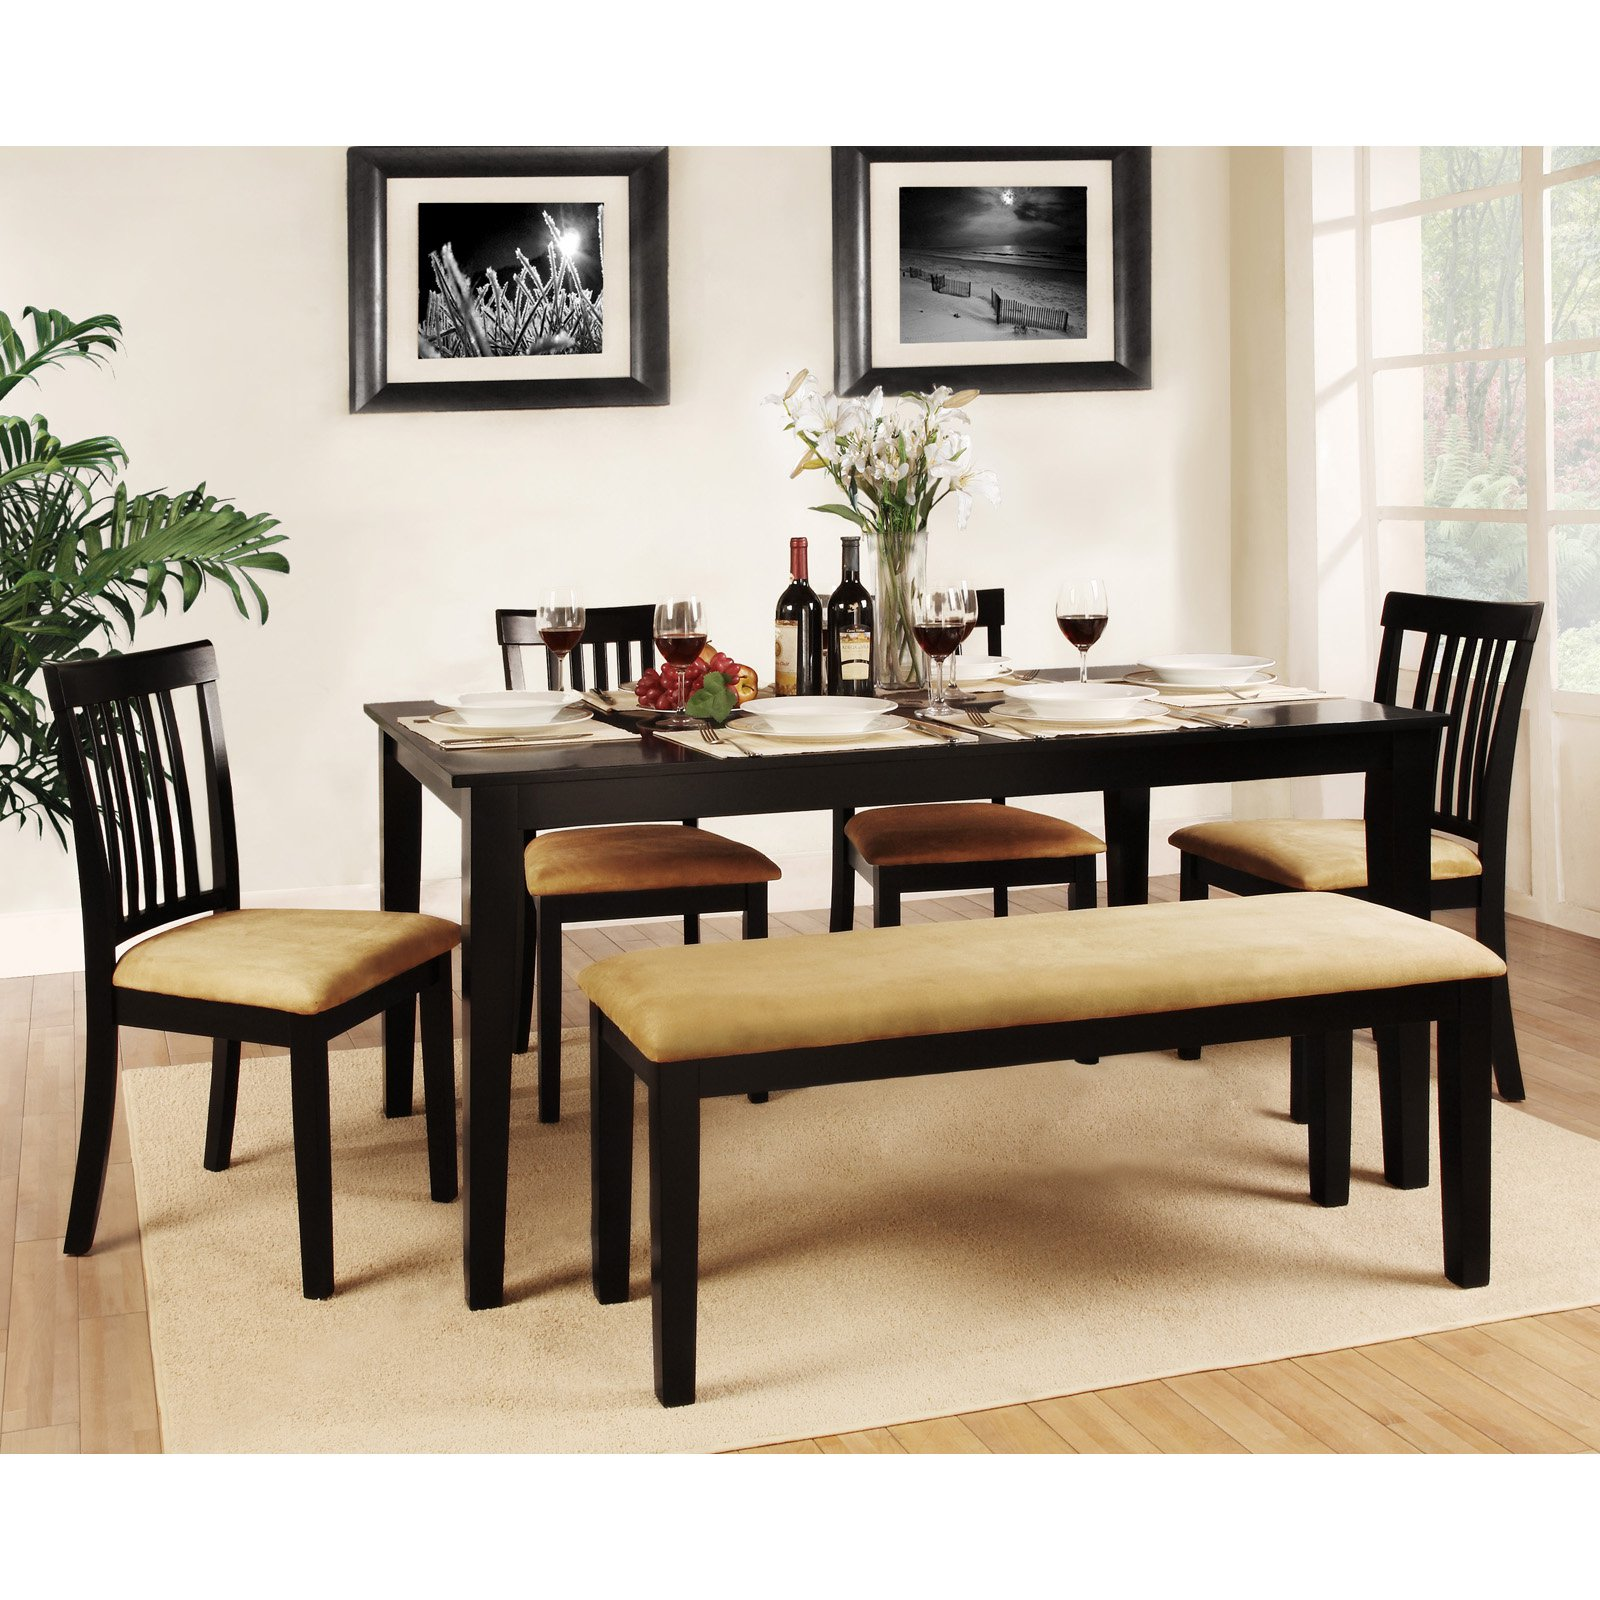 Weston Home Tibalt 6 Piece Rectangle Black Dining Table